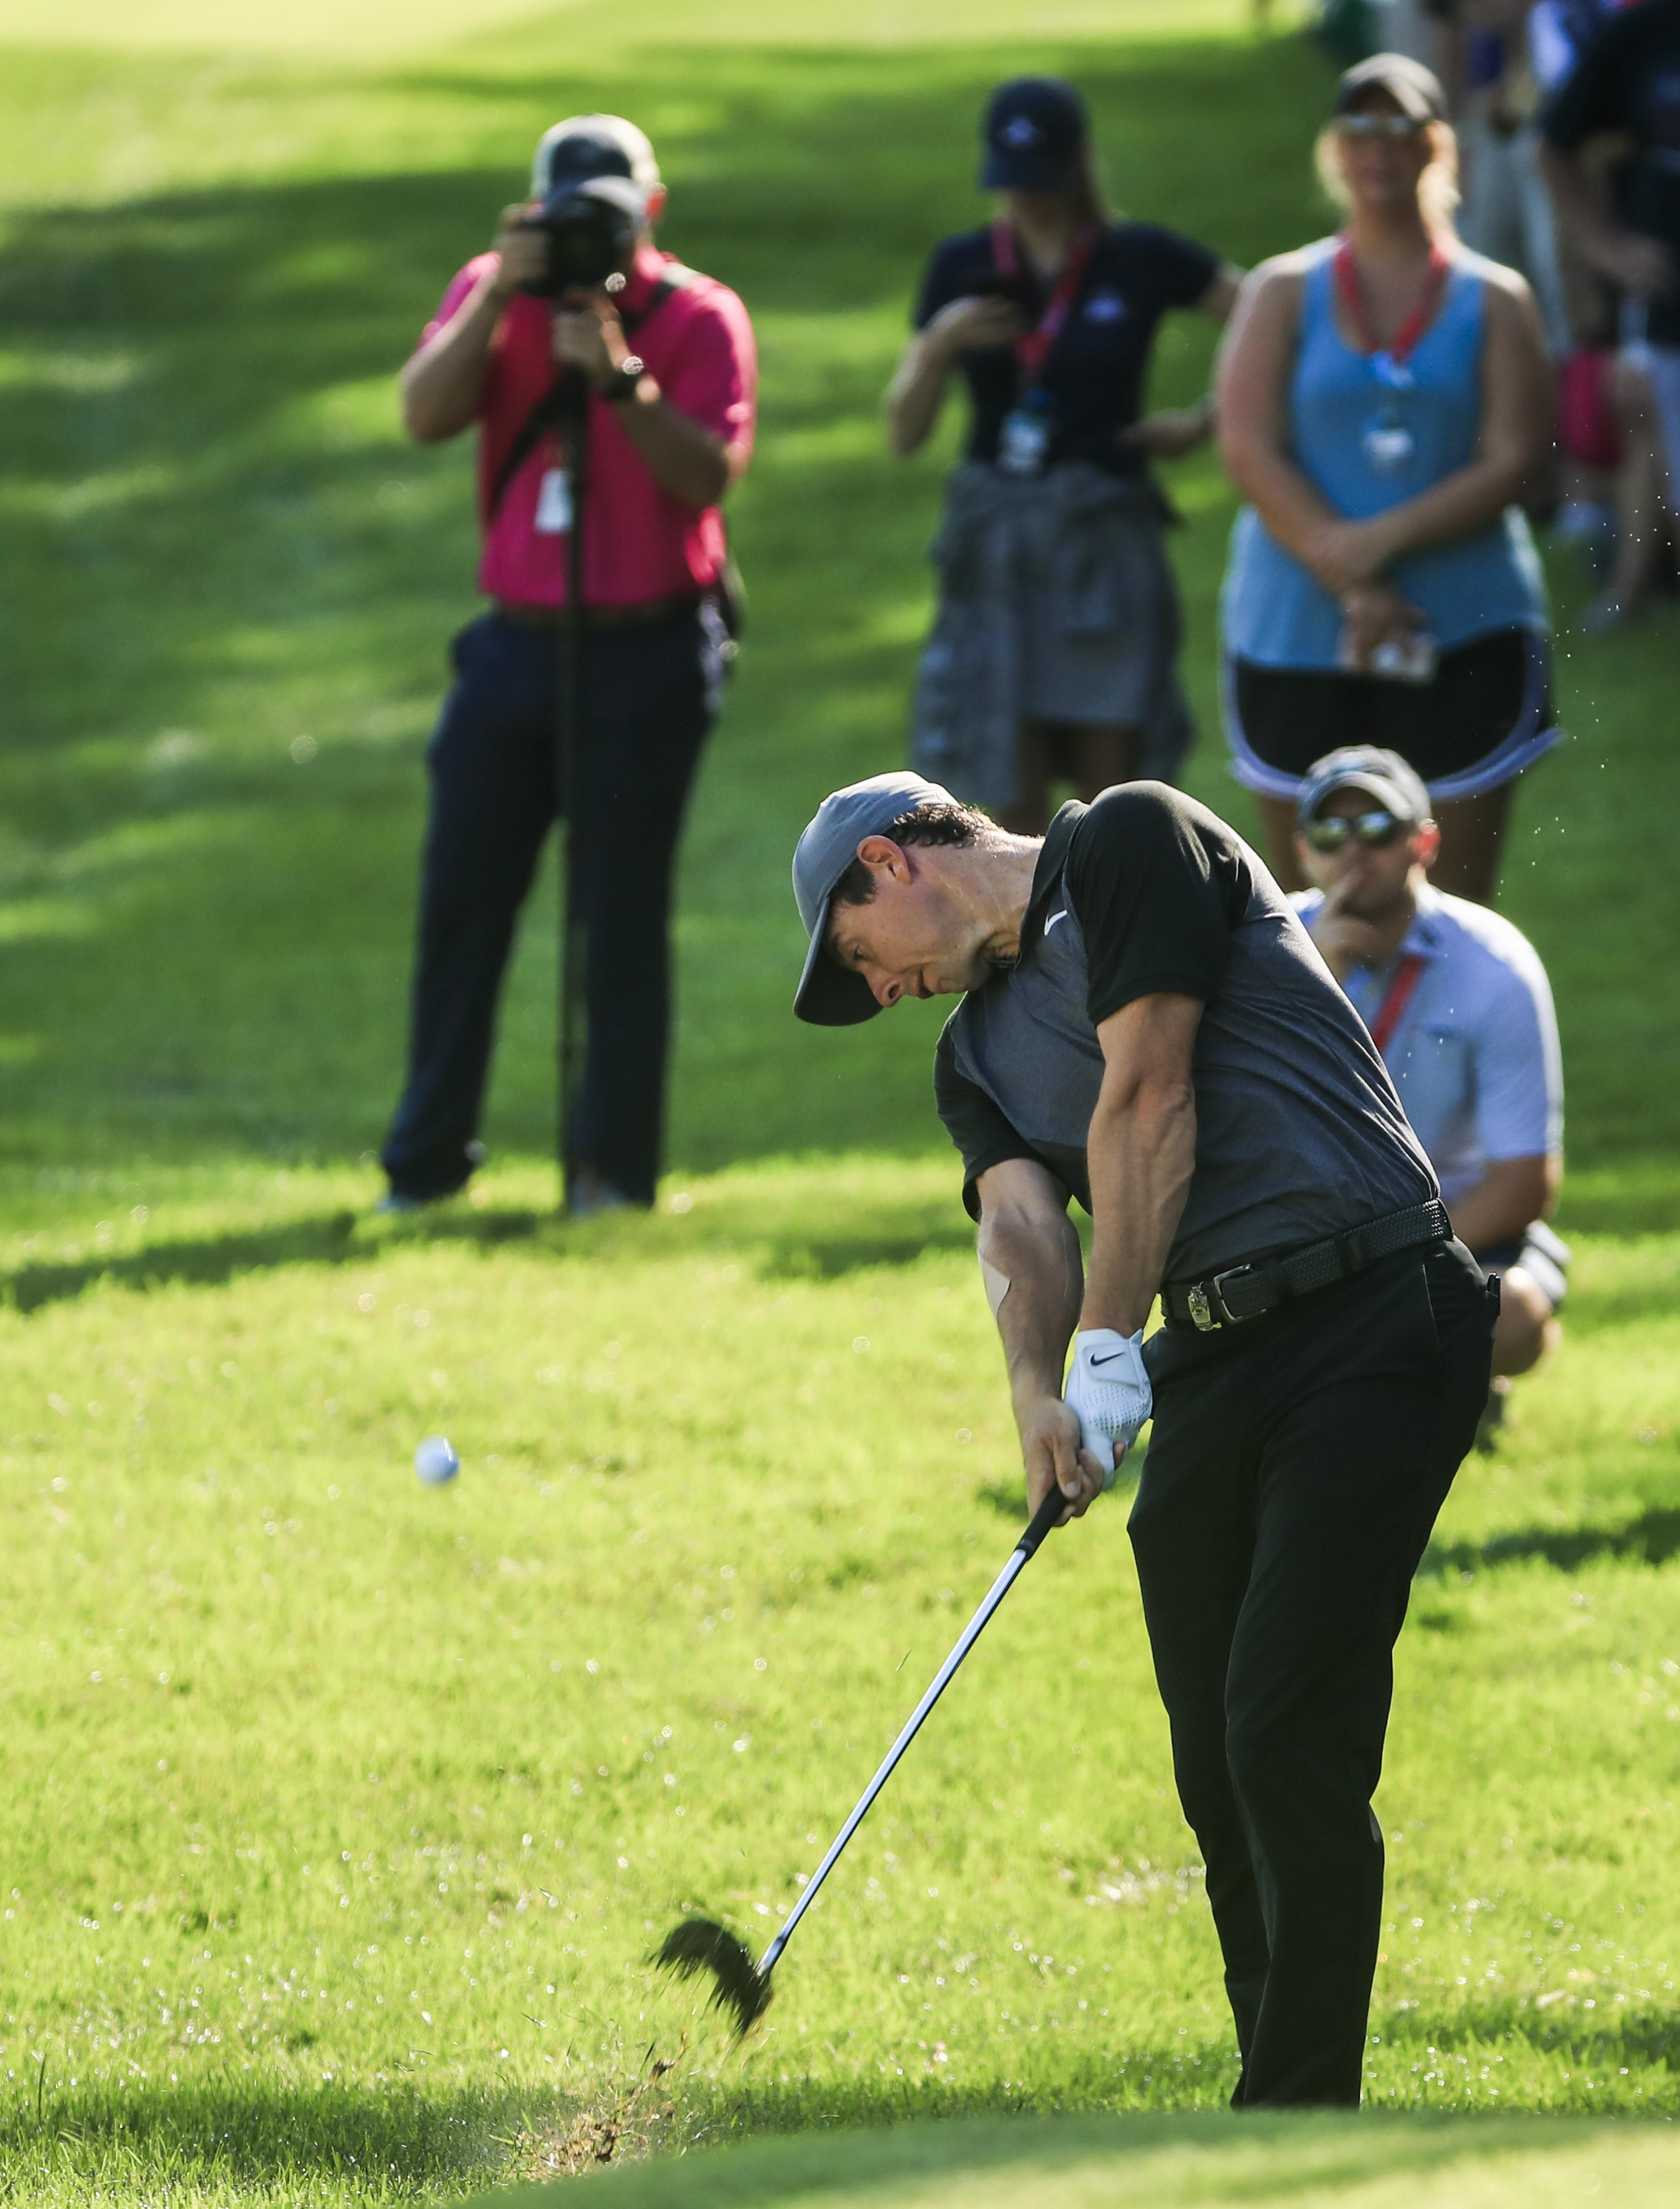 McIlroy admitted he has to work on playing with short irons